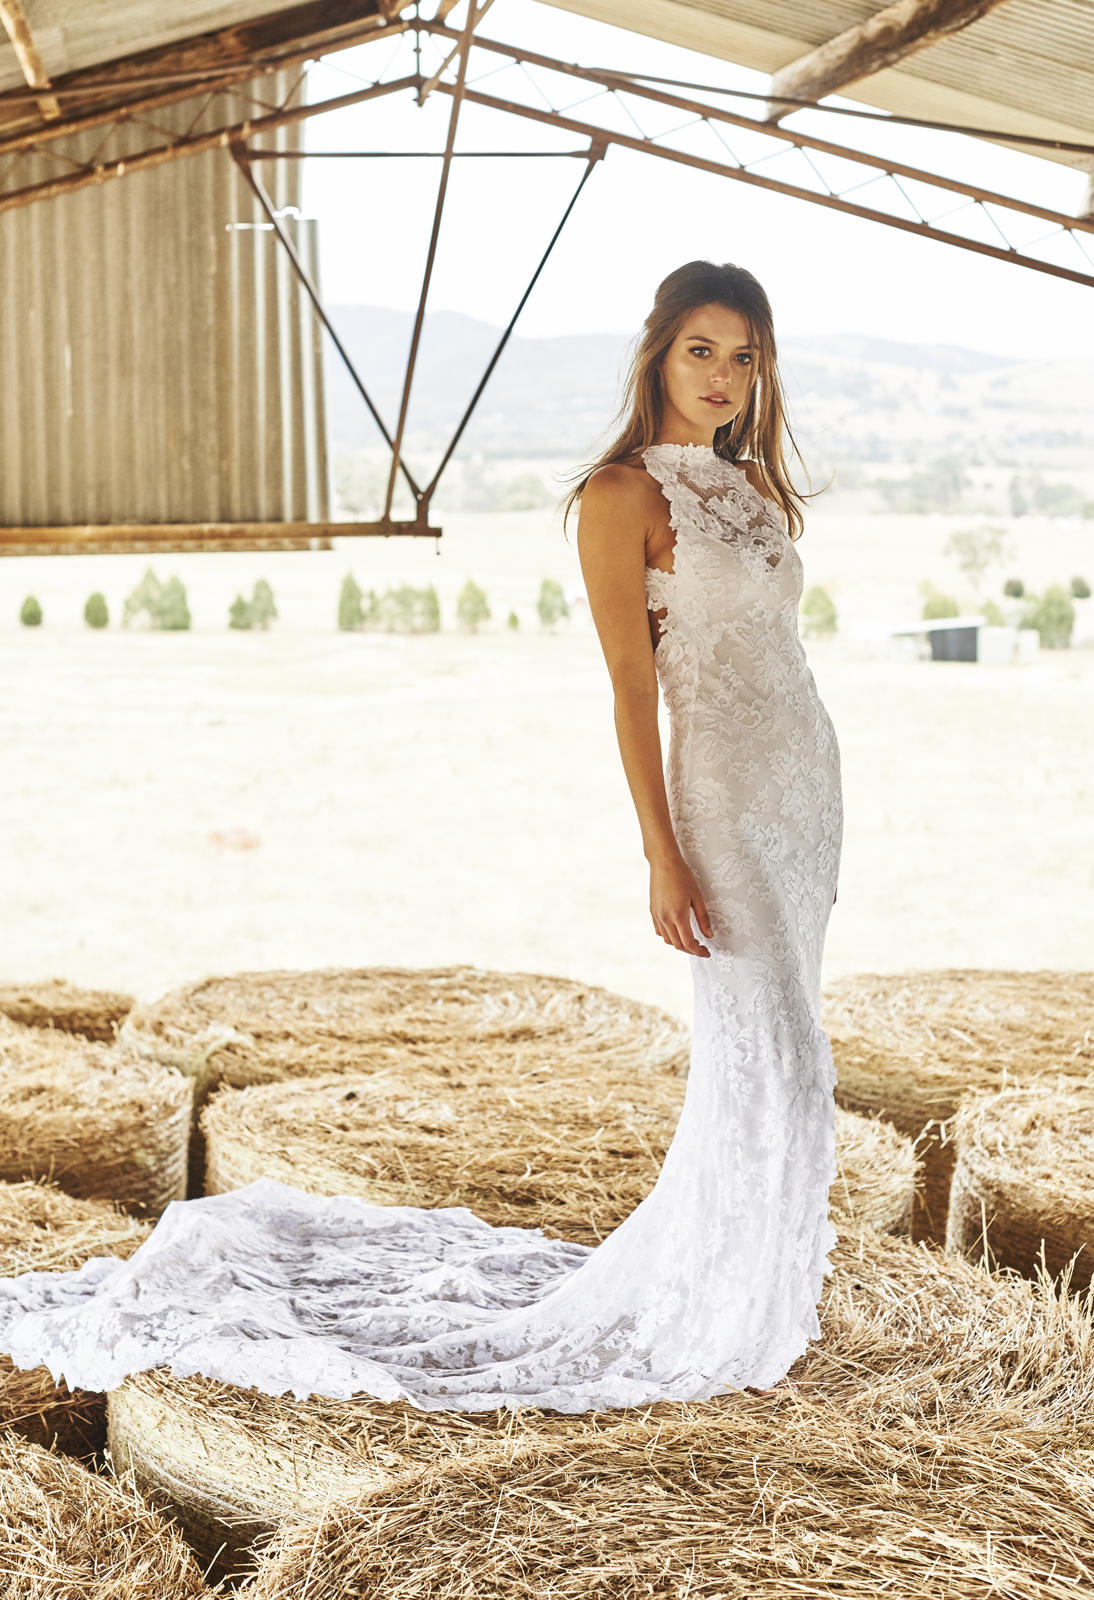 Grace Loves Lace Wedding Dresses - Rustic Wedding Chic - photo#17